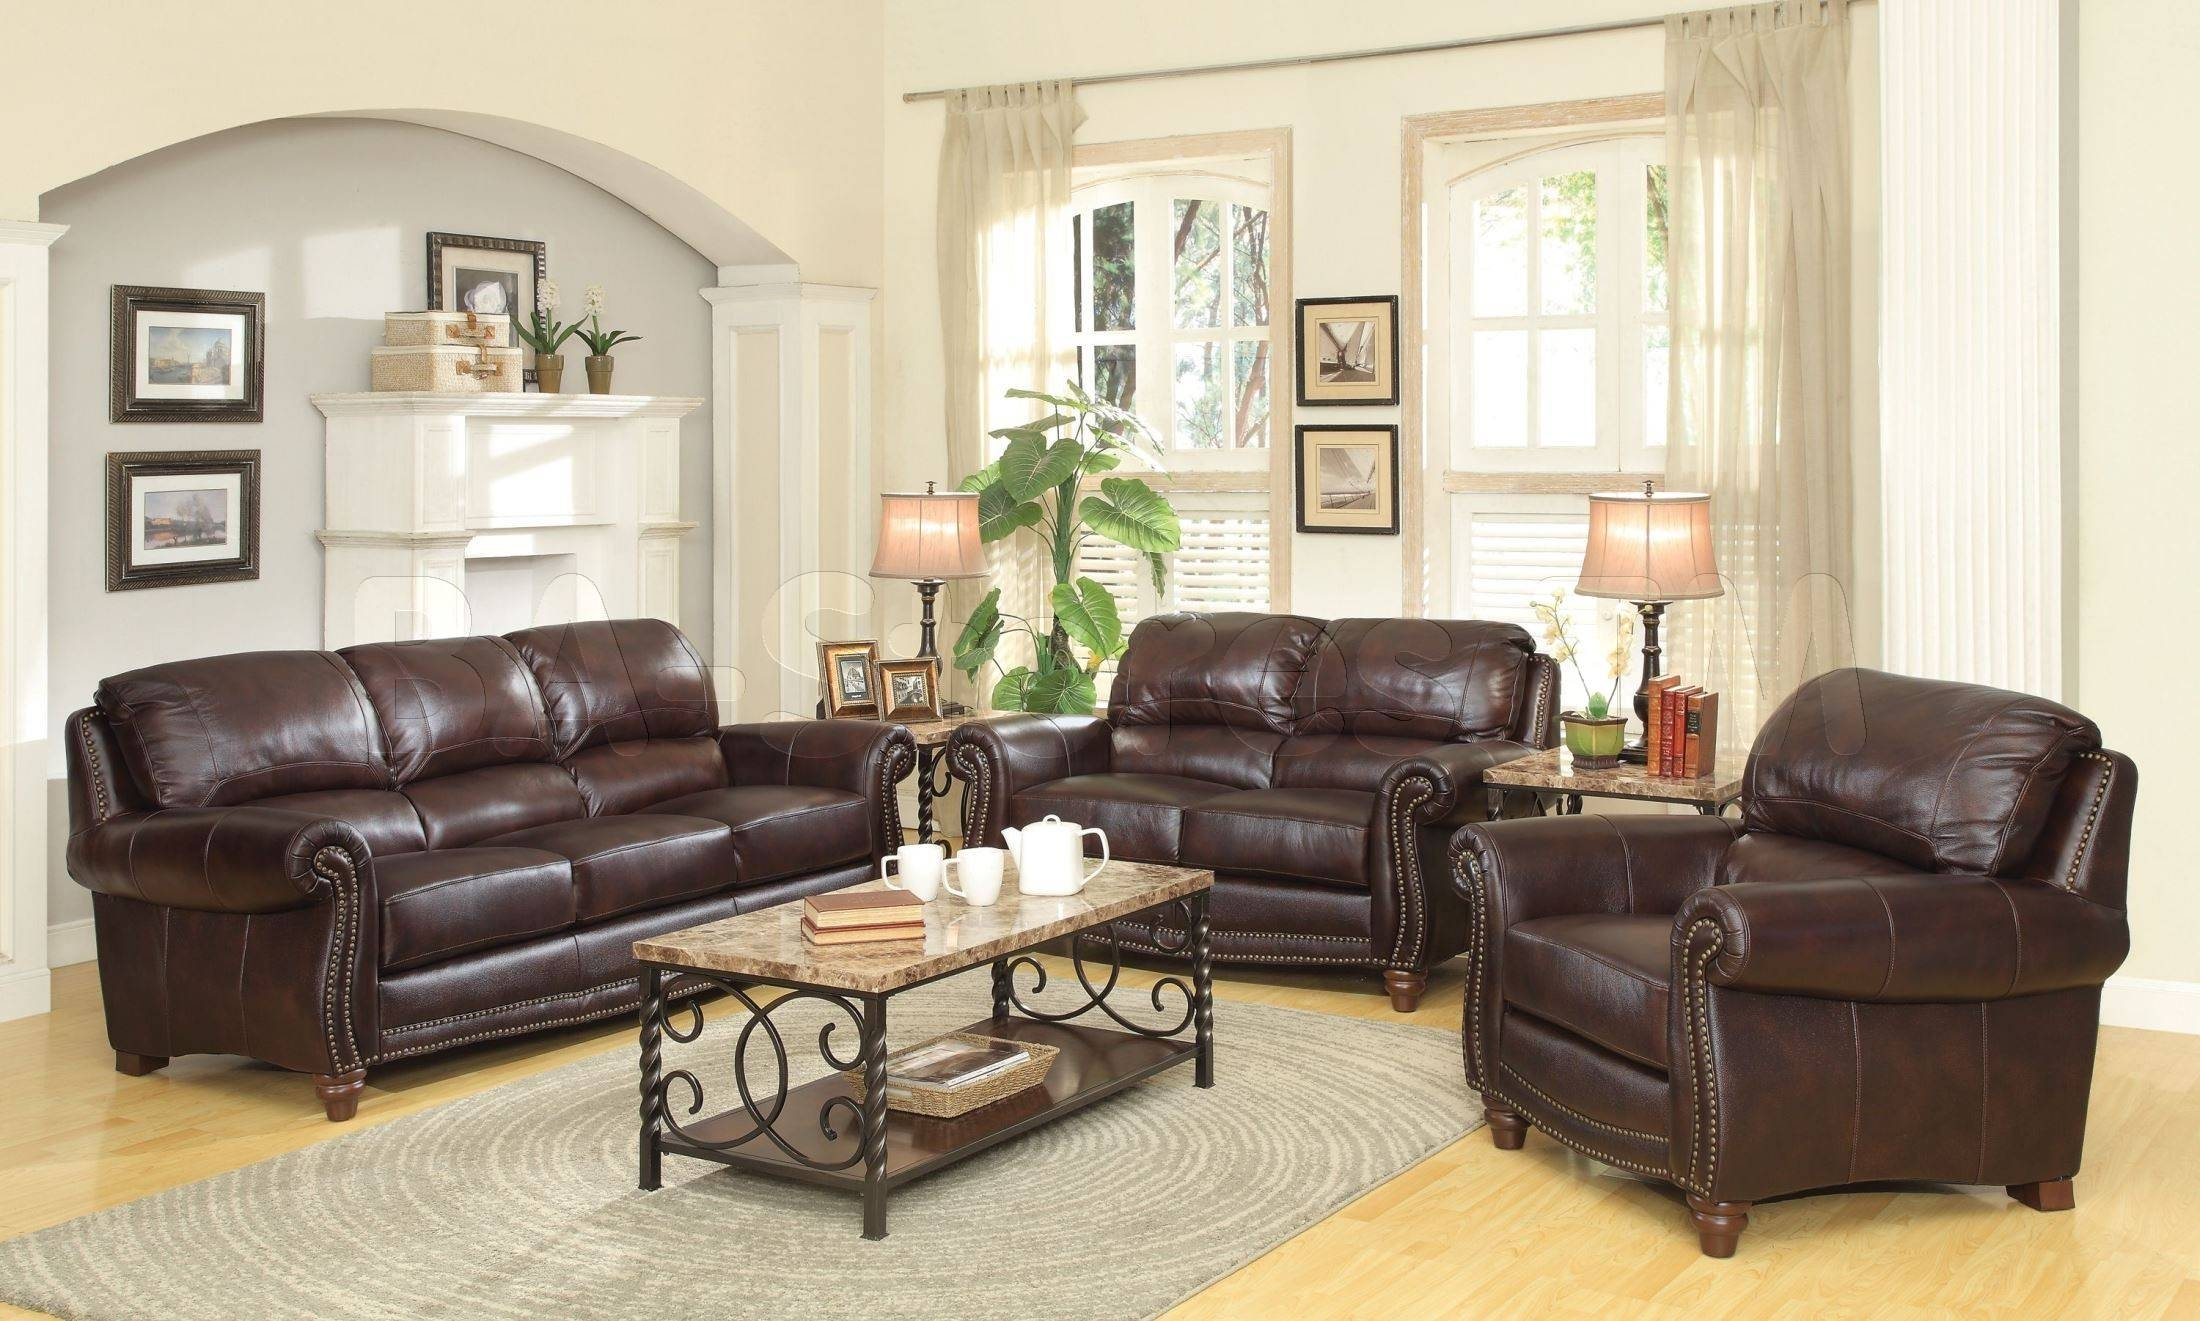 Sofa Sets: Lockhart 3 Pc Burgundy Brown Leather Sofa Set Coa With Regard To Burgundy Leather Sofa Sets (View 13 of 15)